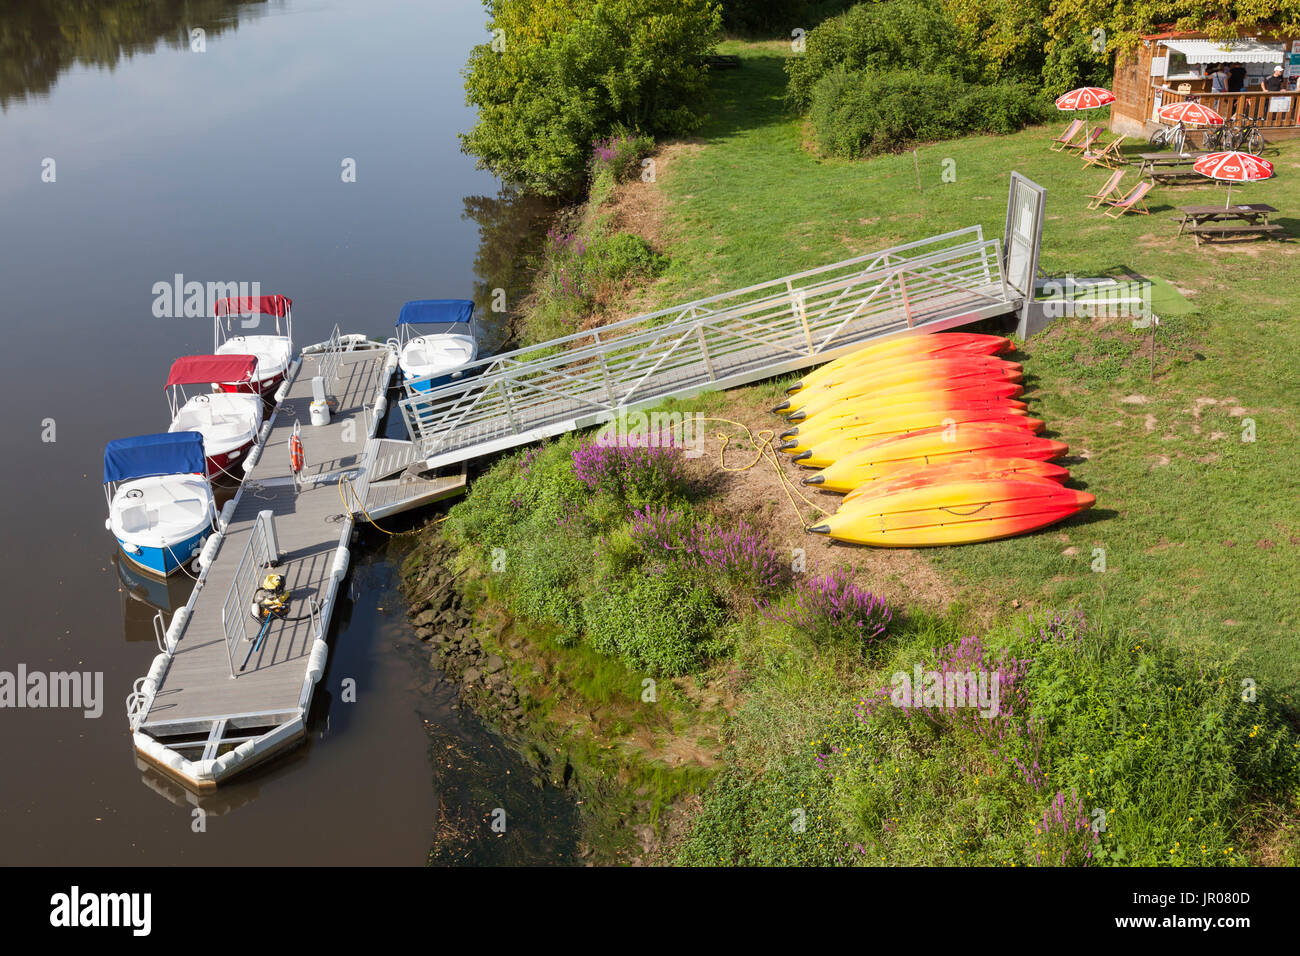 The mini nautical sports and recreation park on the river Adour, at Josse (France). It offers the opportunity to - Stock Image